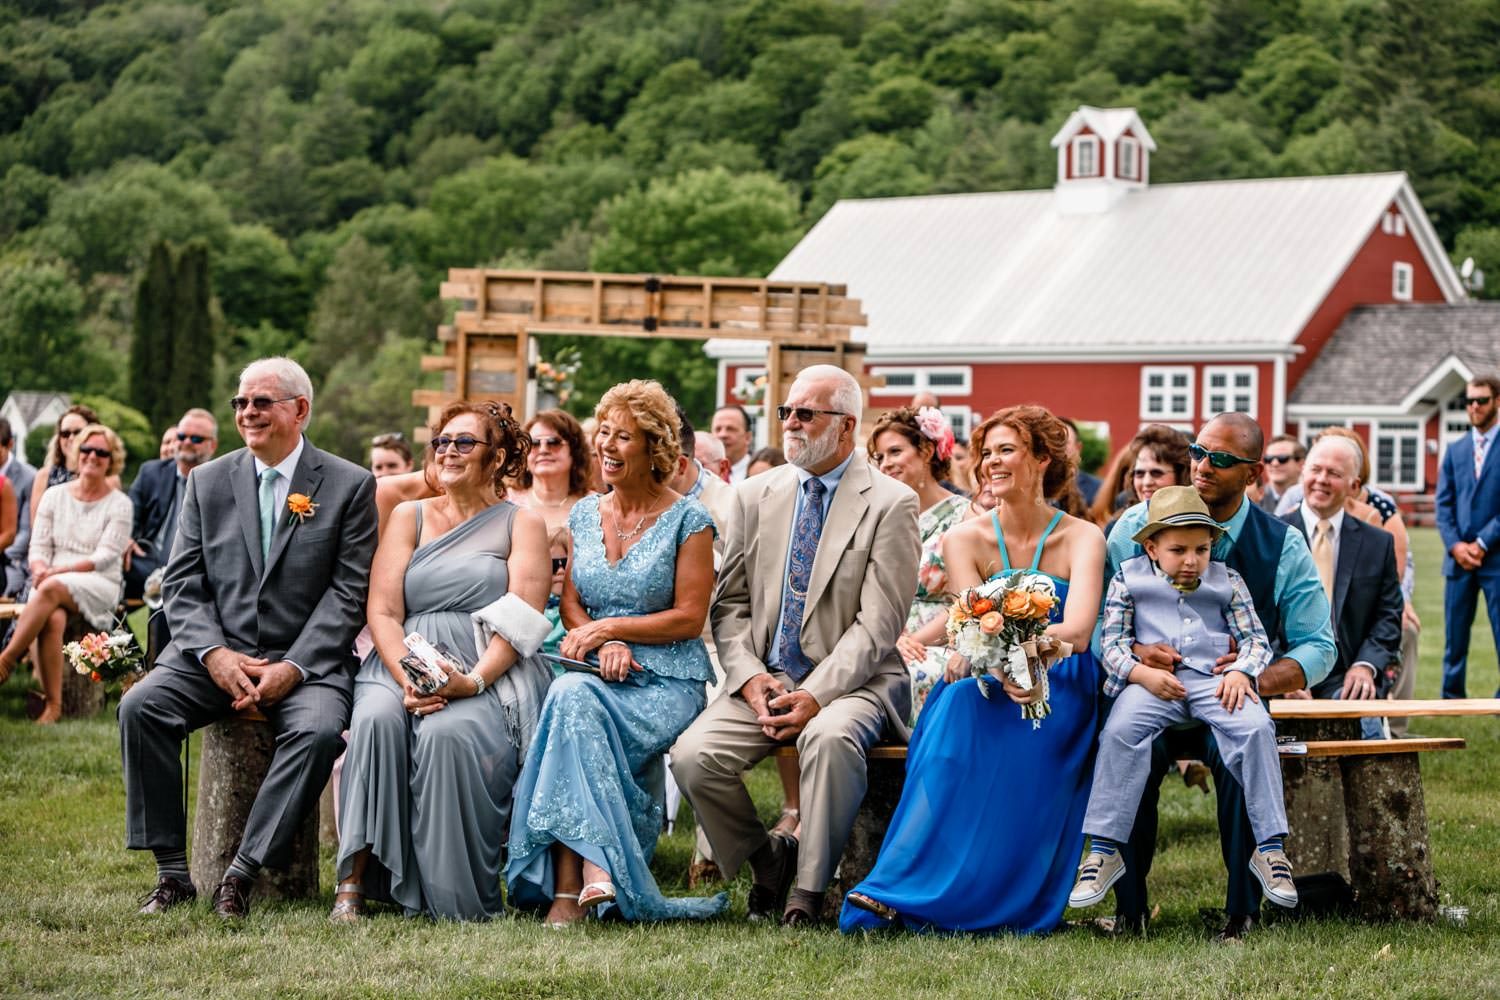 guests watch vermont wedding ceremony from benches with smiles and laughs